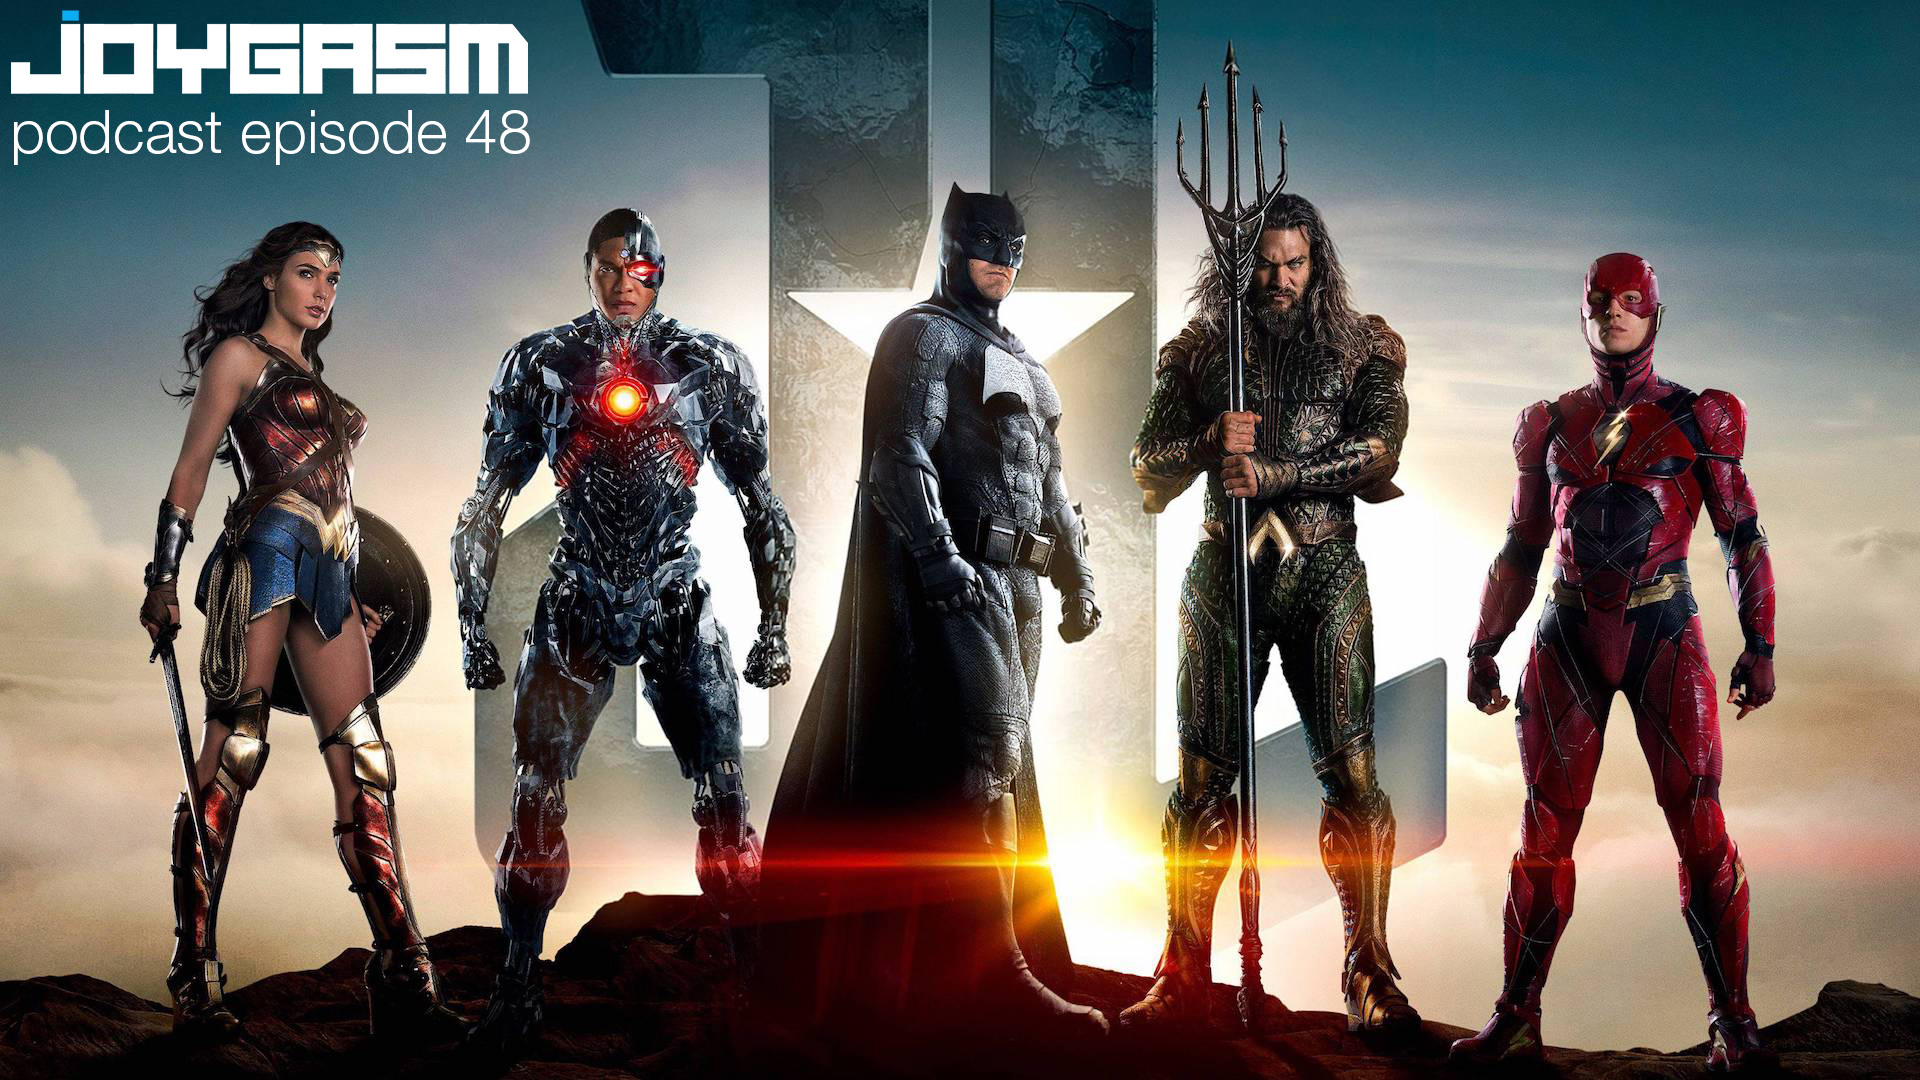 Joygasm Podcast Ep. 48: Justice League Review, Stranger Things, Battlefront 2 & More